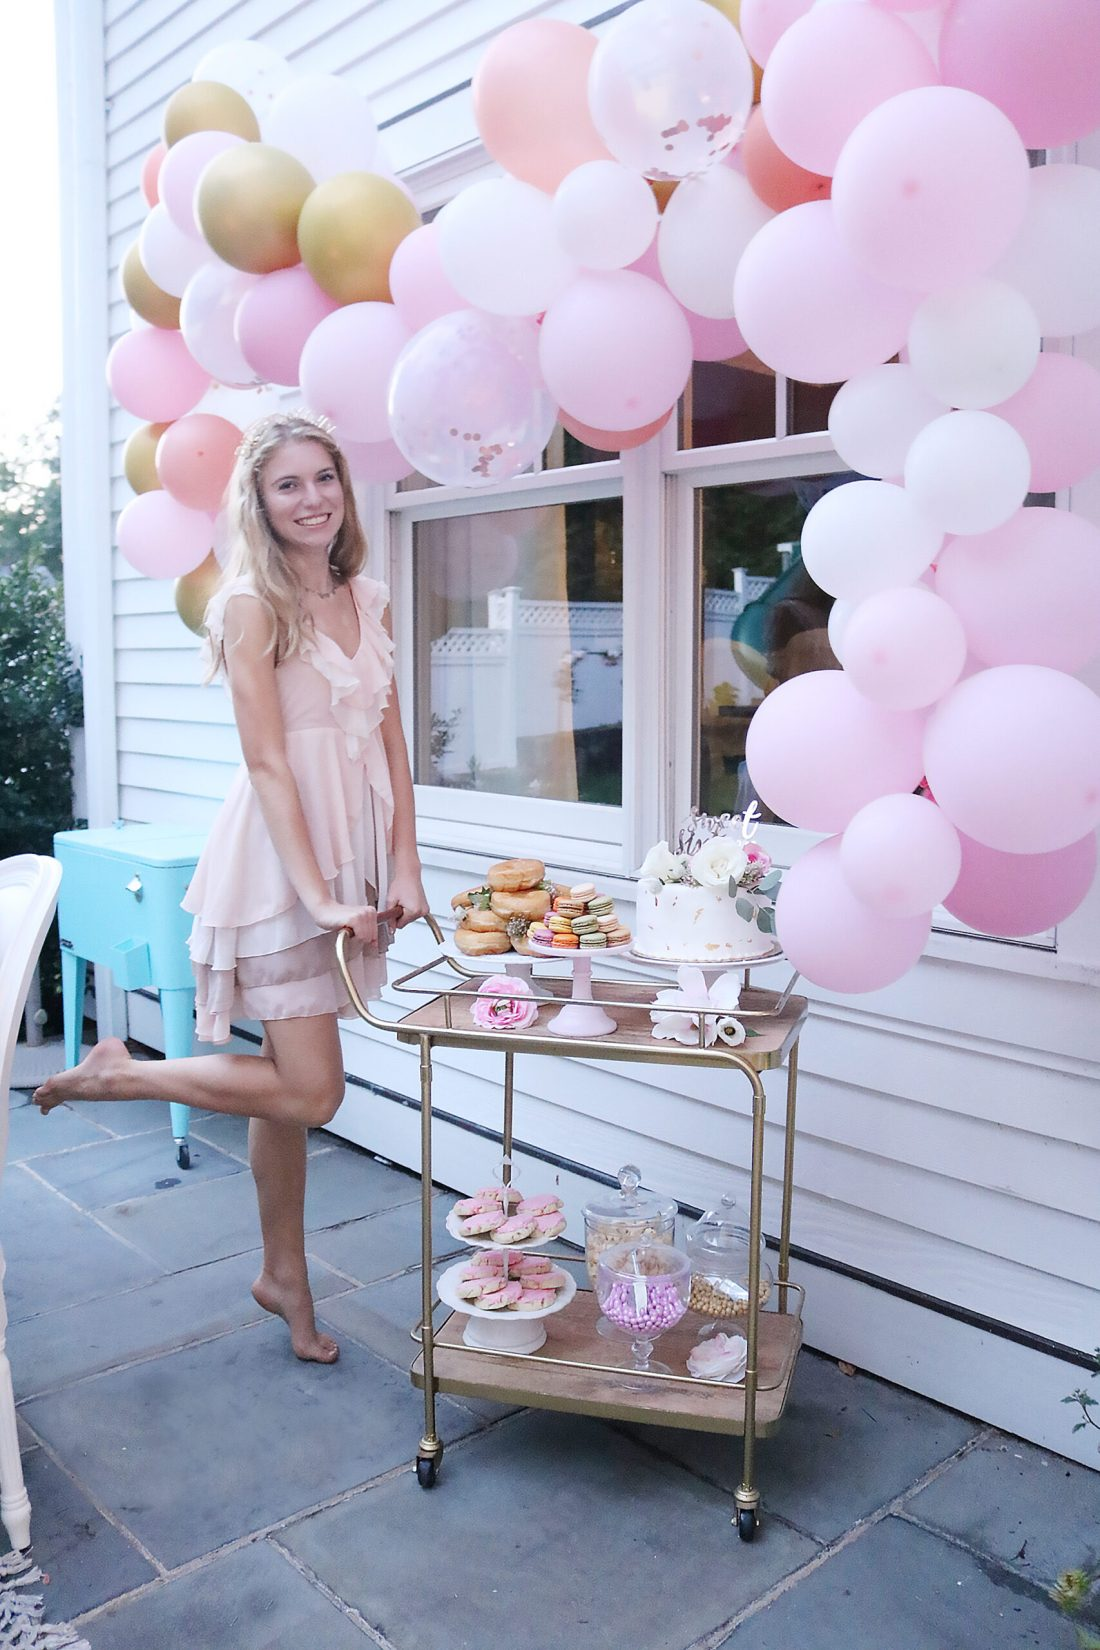 Boho Chic Sweet Sixteen Birthday Party Celebration with all the details and party plans.  Love the birthday cake on the dessert bar cart. We did a sixteenth birthday photoshoot.  Perfect for any teenager turning 16! || Darling Darleen Top CT Lifestyle Blogger #sixteenthbirthday #sixteenthbirthdayparty